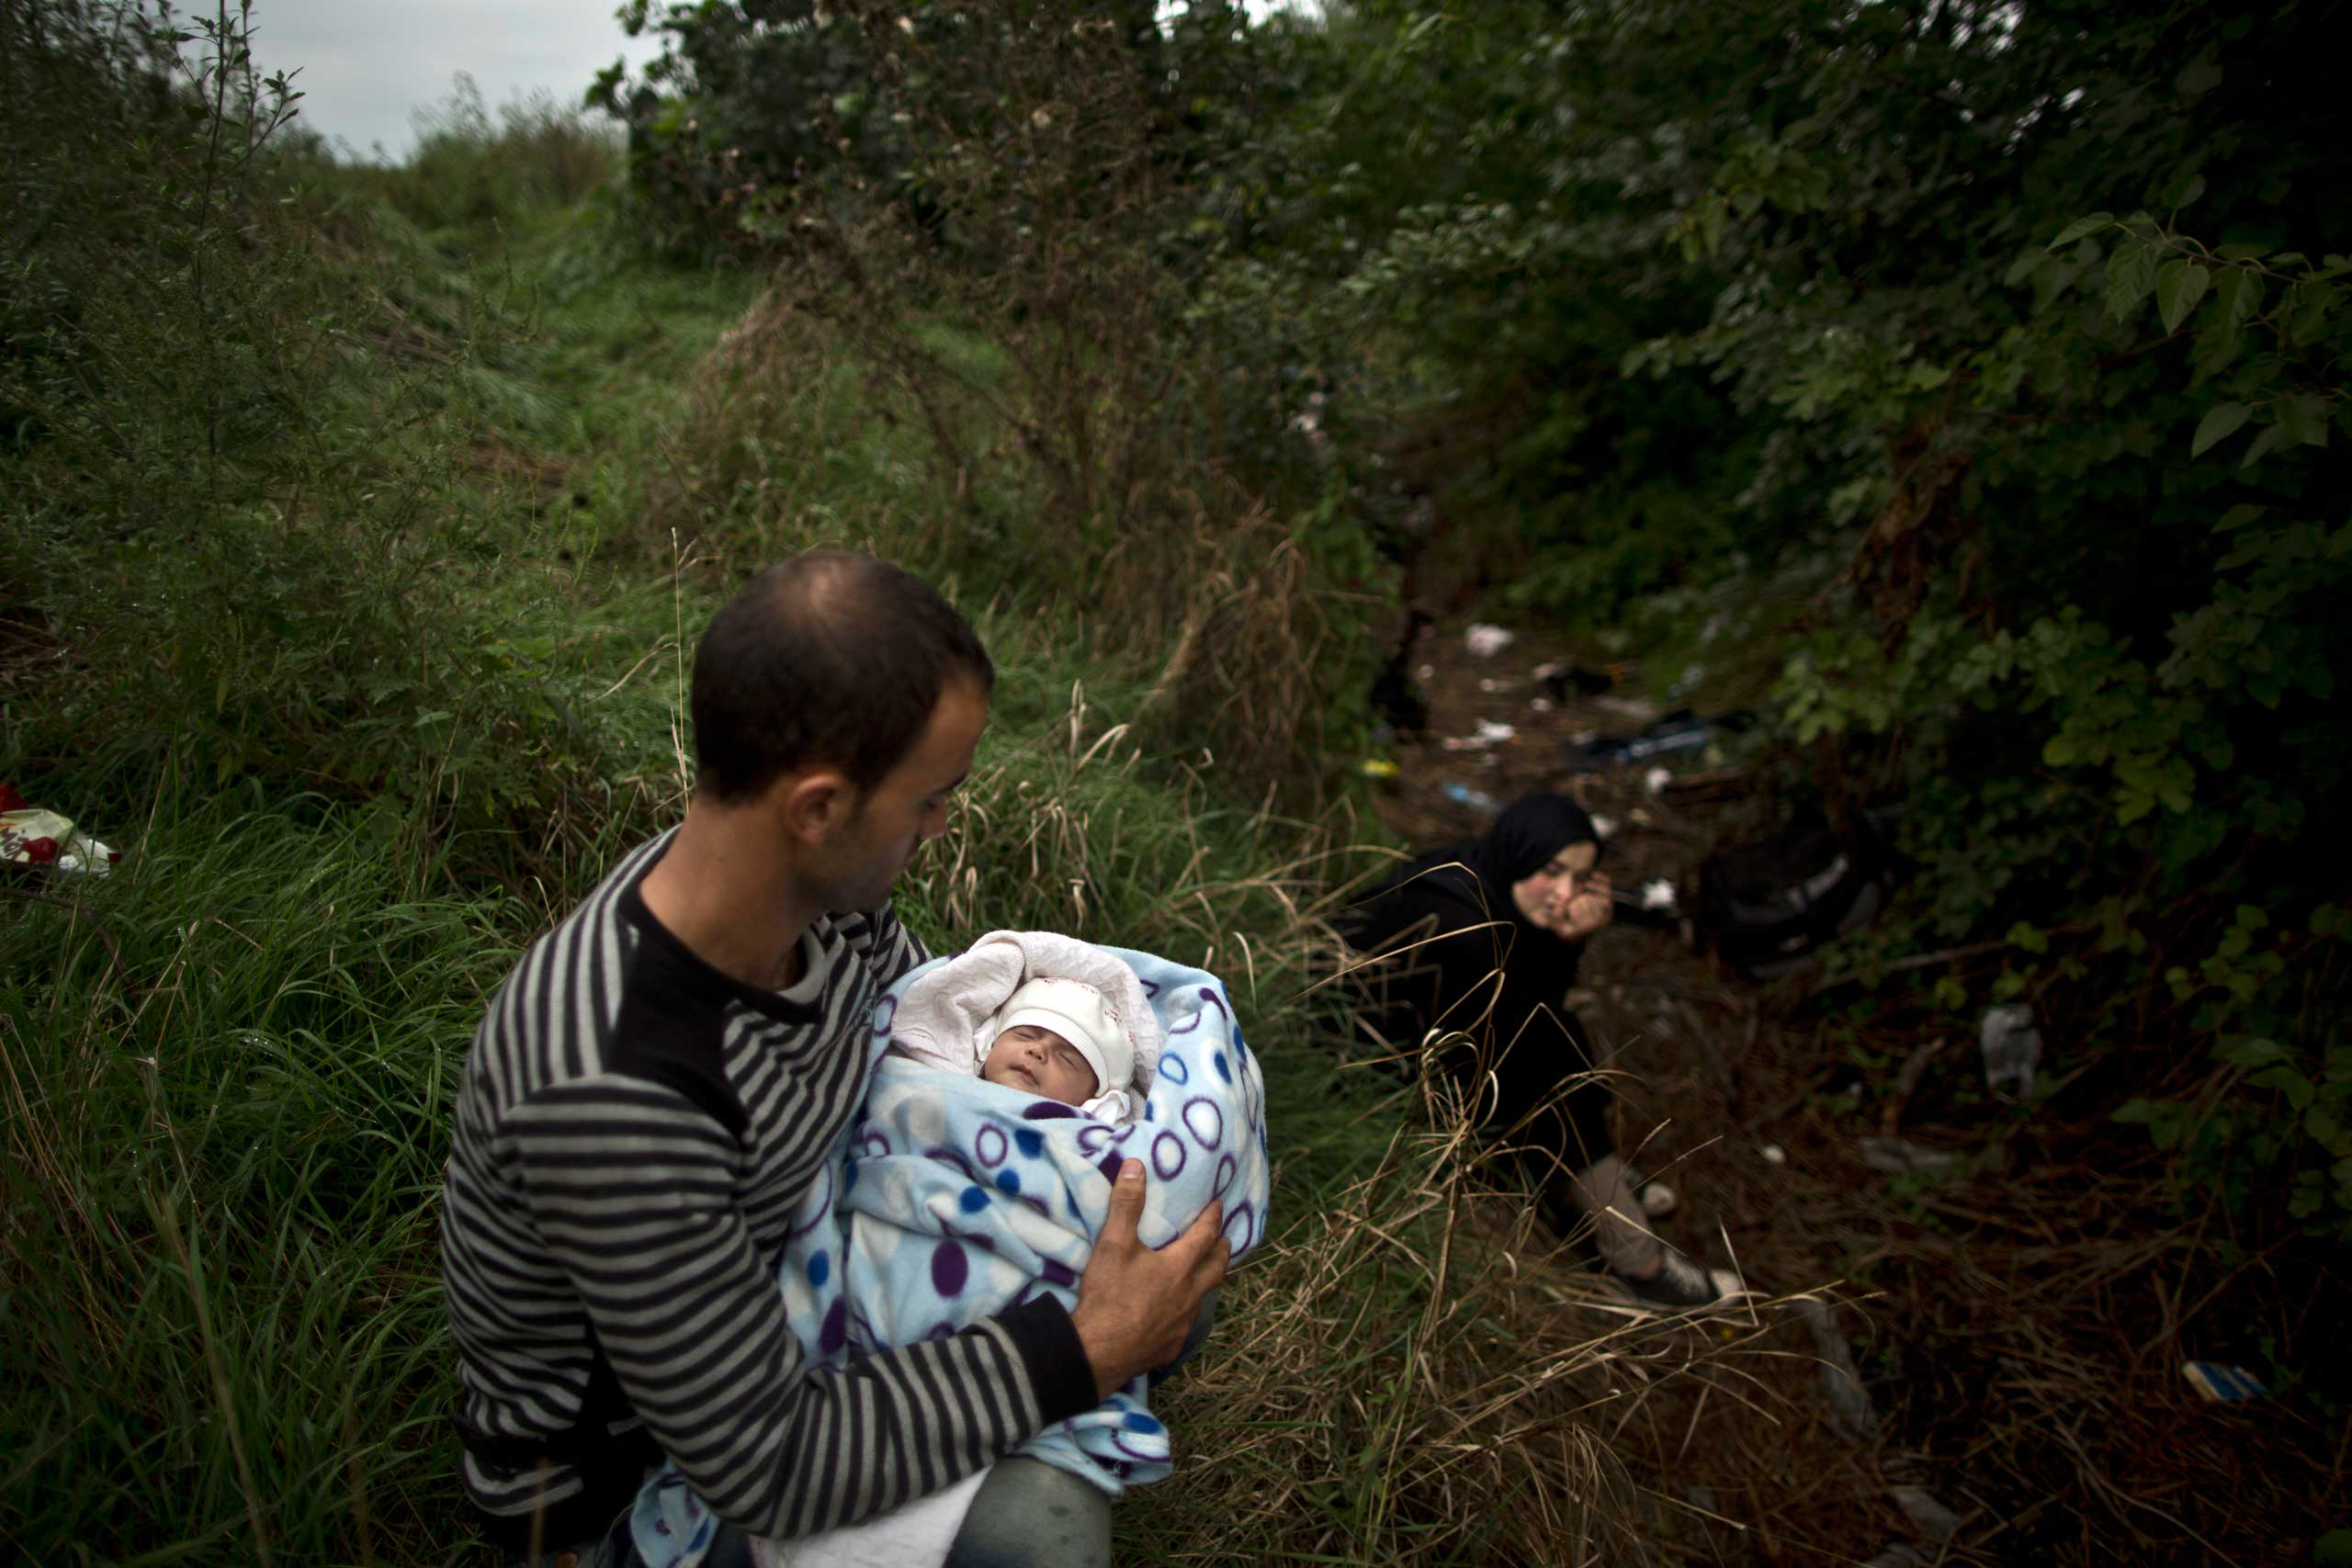 Syrian refugee Raed Alabdou, 24, holds his one-month old daughter Roa'a, while he and his wife hide in a field not to be seen by Hungarian policemen, after they crossed the Serbian-Hungarian border near Roszke, southern Hungary, on Sept. 11, 2015.